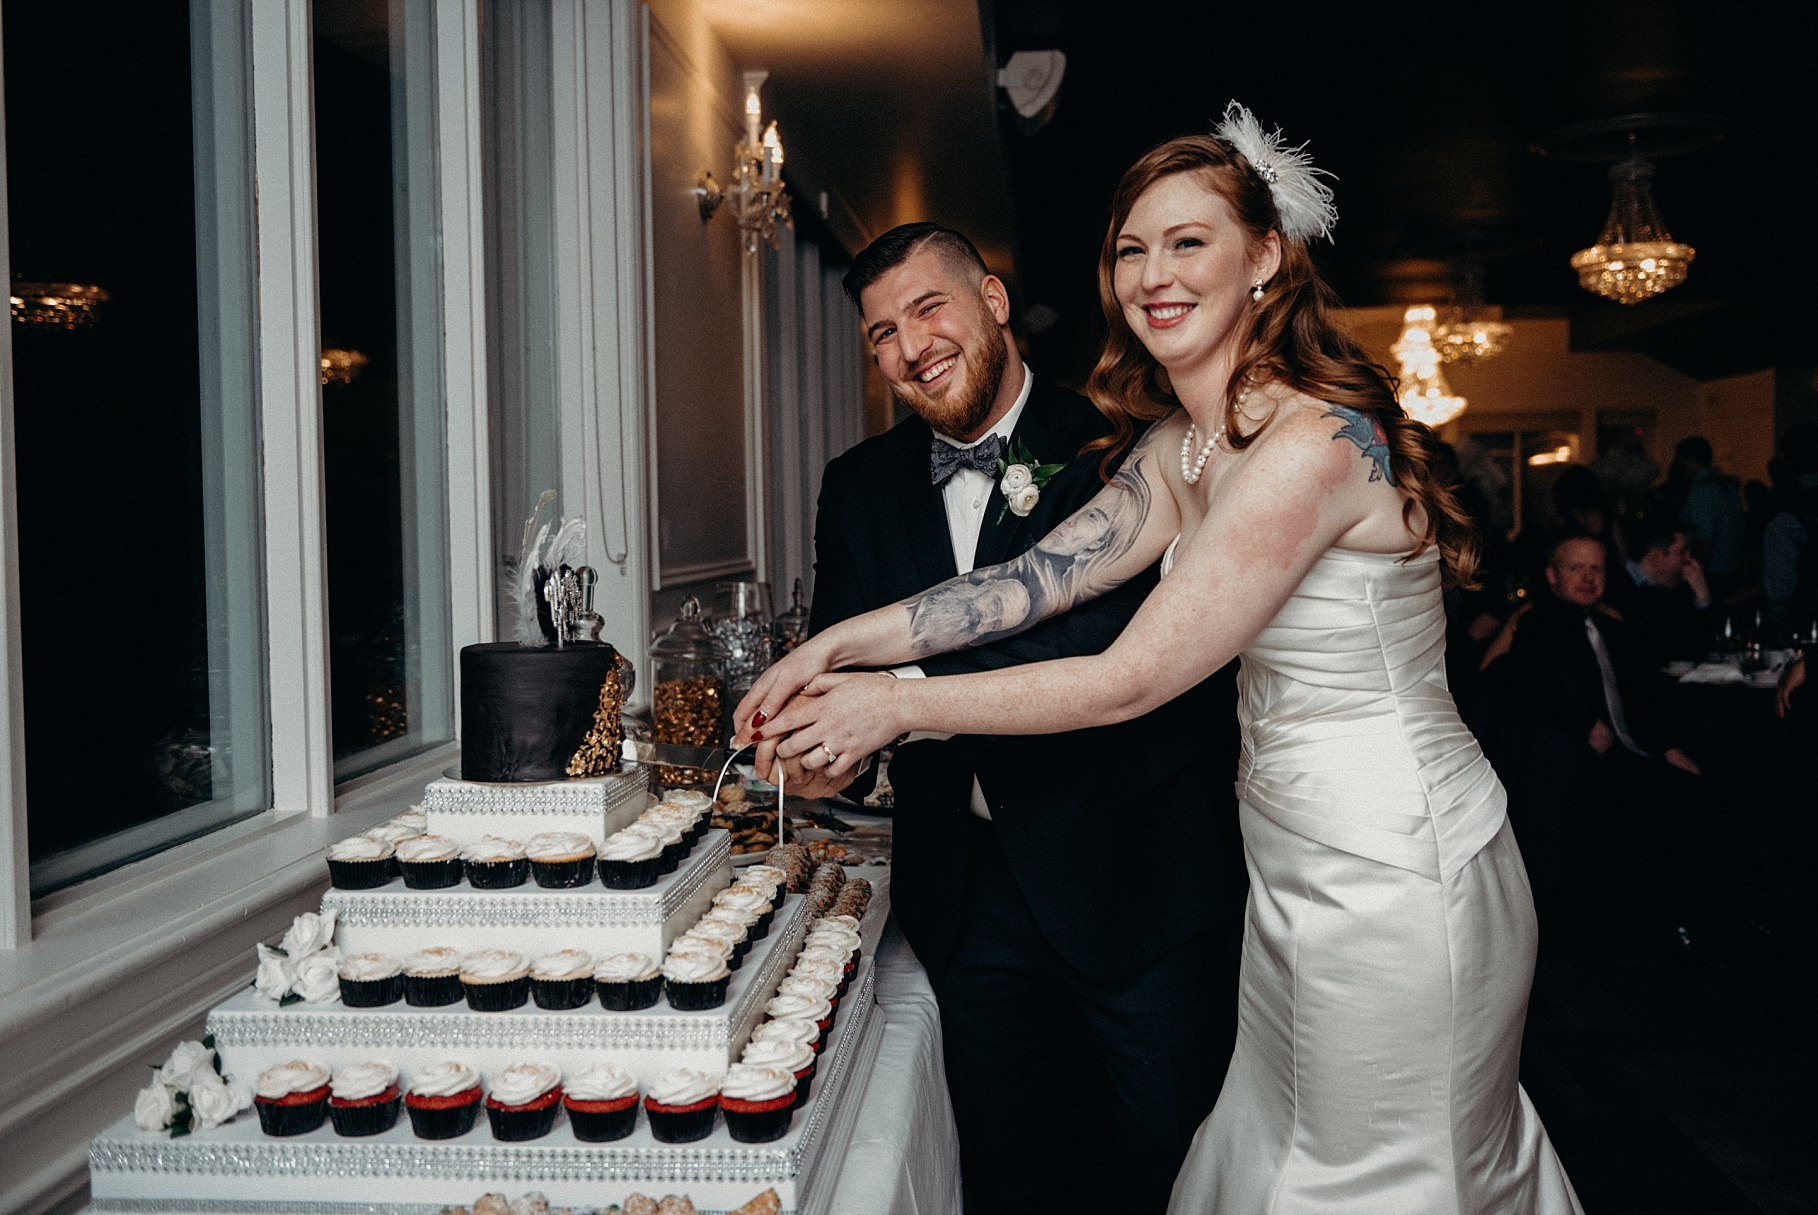 Orchard View Wedding by Mocha Tree Studios Ottawa Wedding and Engagement Photographer and Videographer Dark Moody Intimate Authentic Modern Romantic Cinematic Best Candid  33